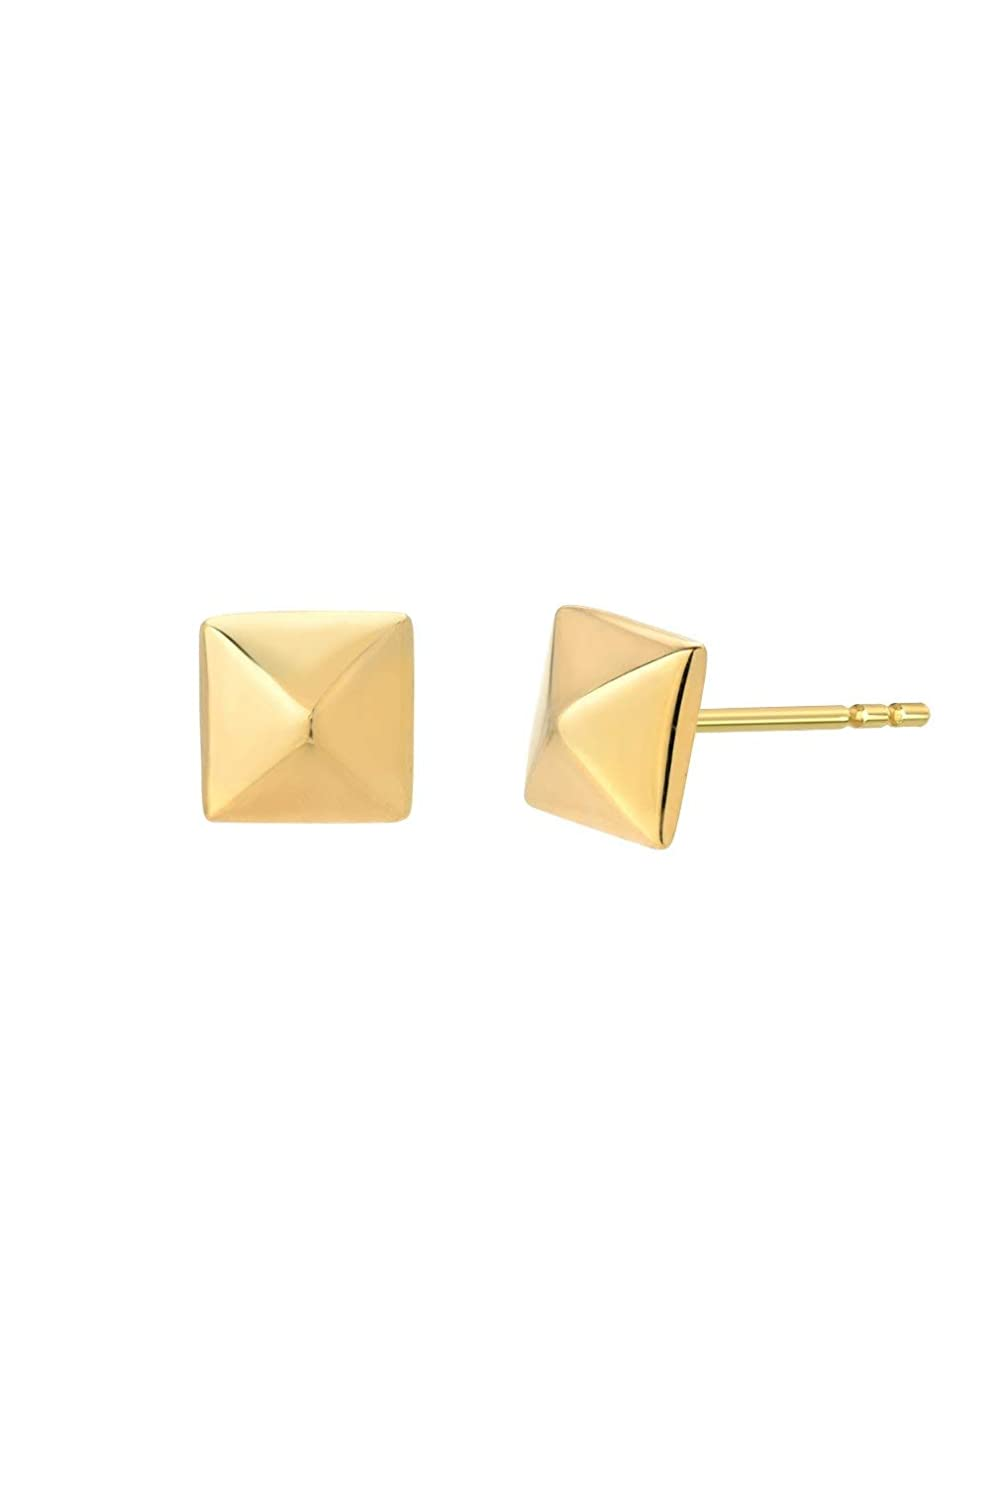 4c413f2aa Amazon.com: 14k gold pyramid stud earrings, Zoe Lev Jewelry: Handmade